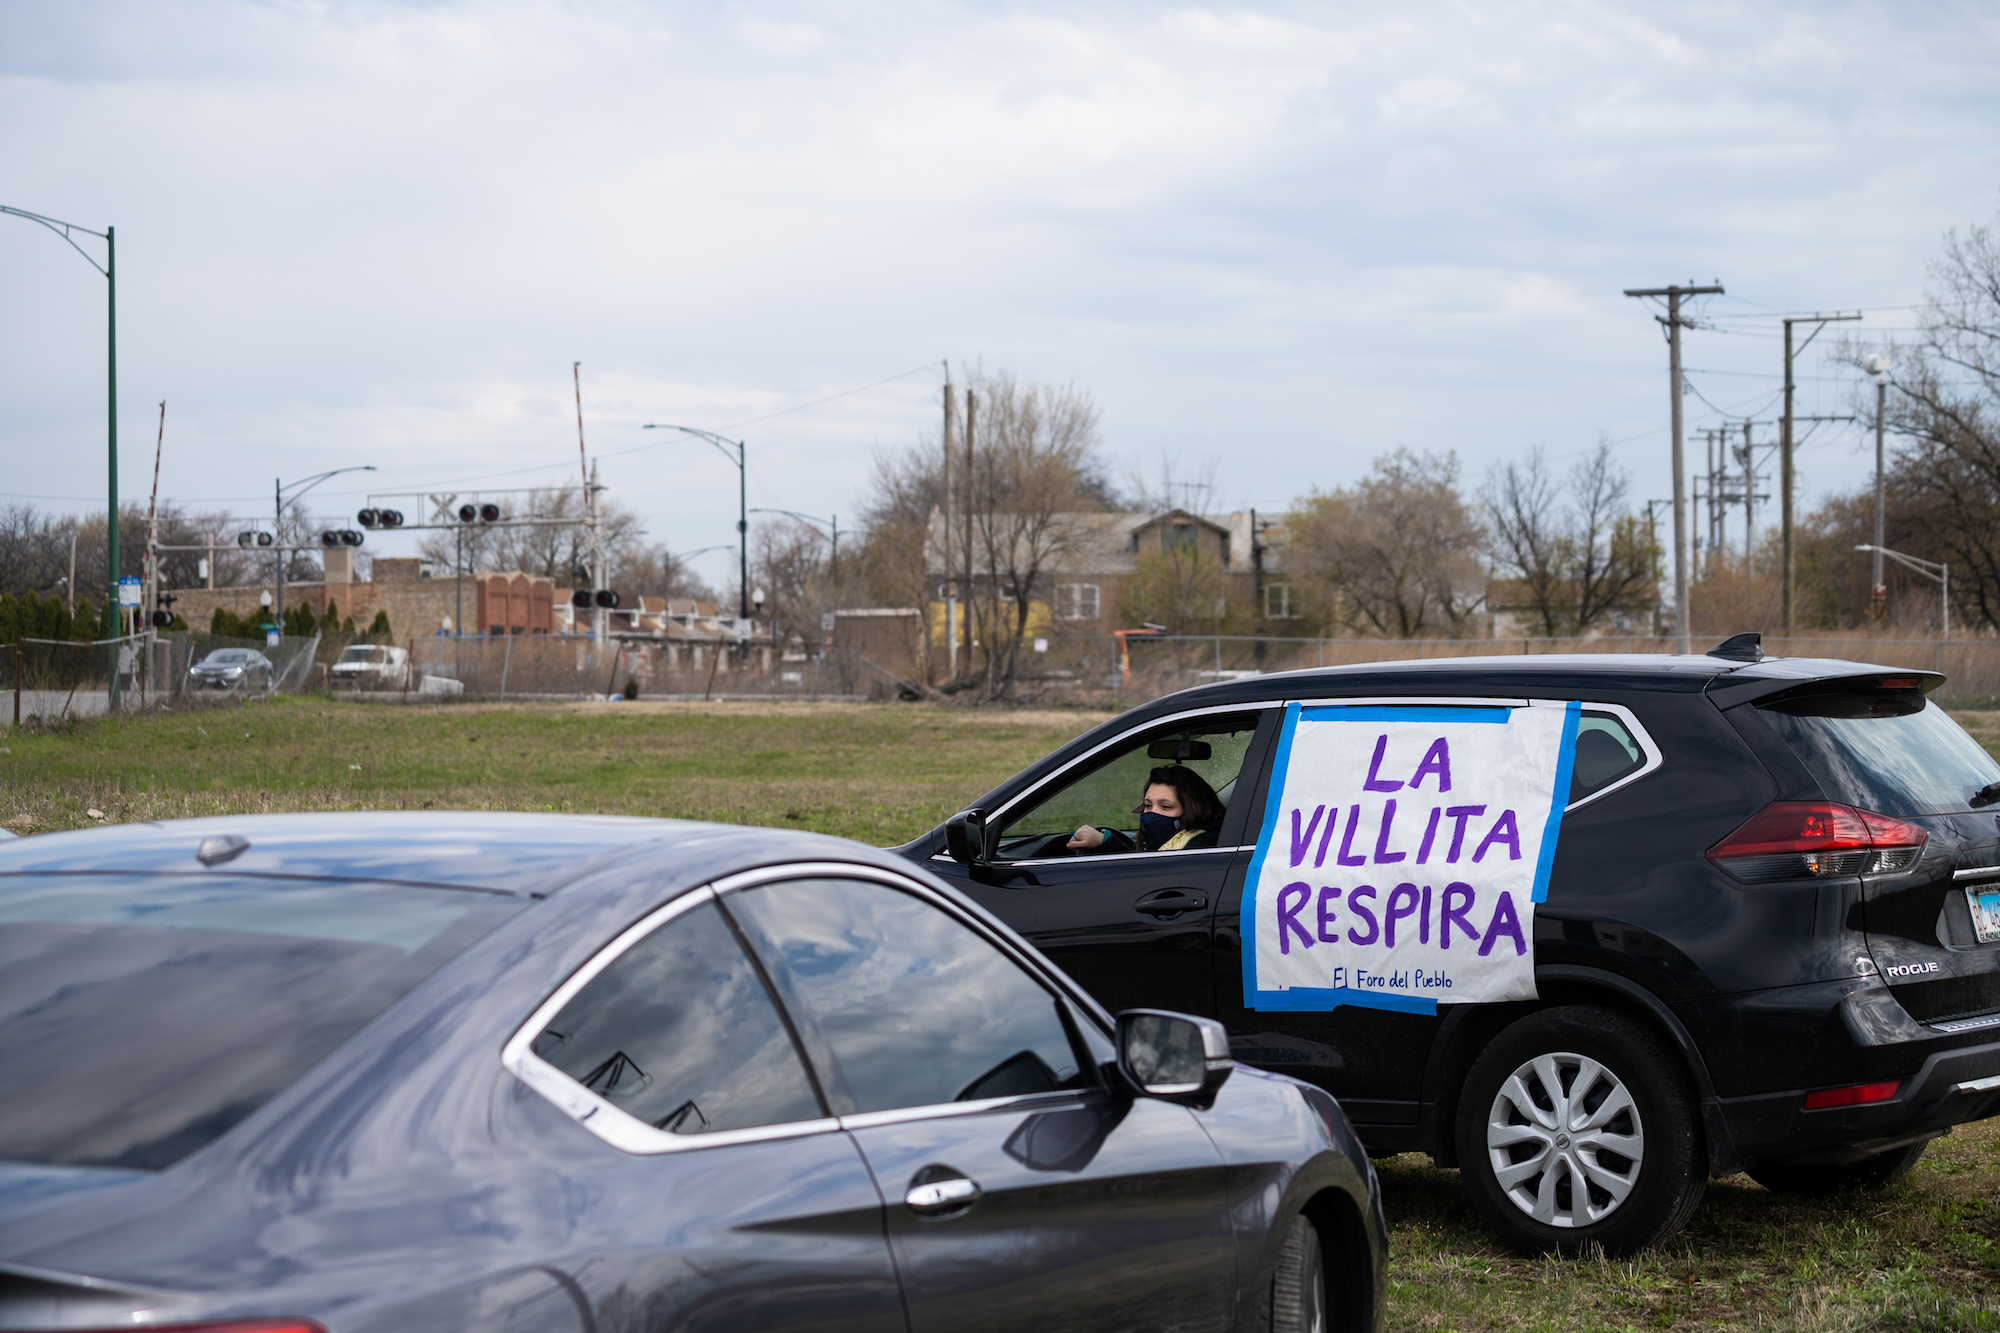 photo of car protest in front of Chicago coal power plant